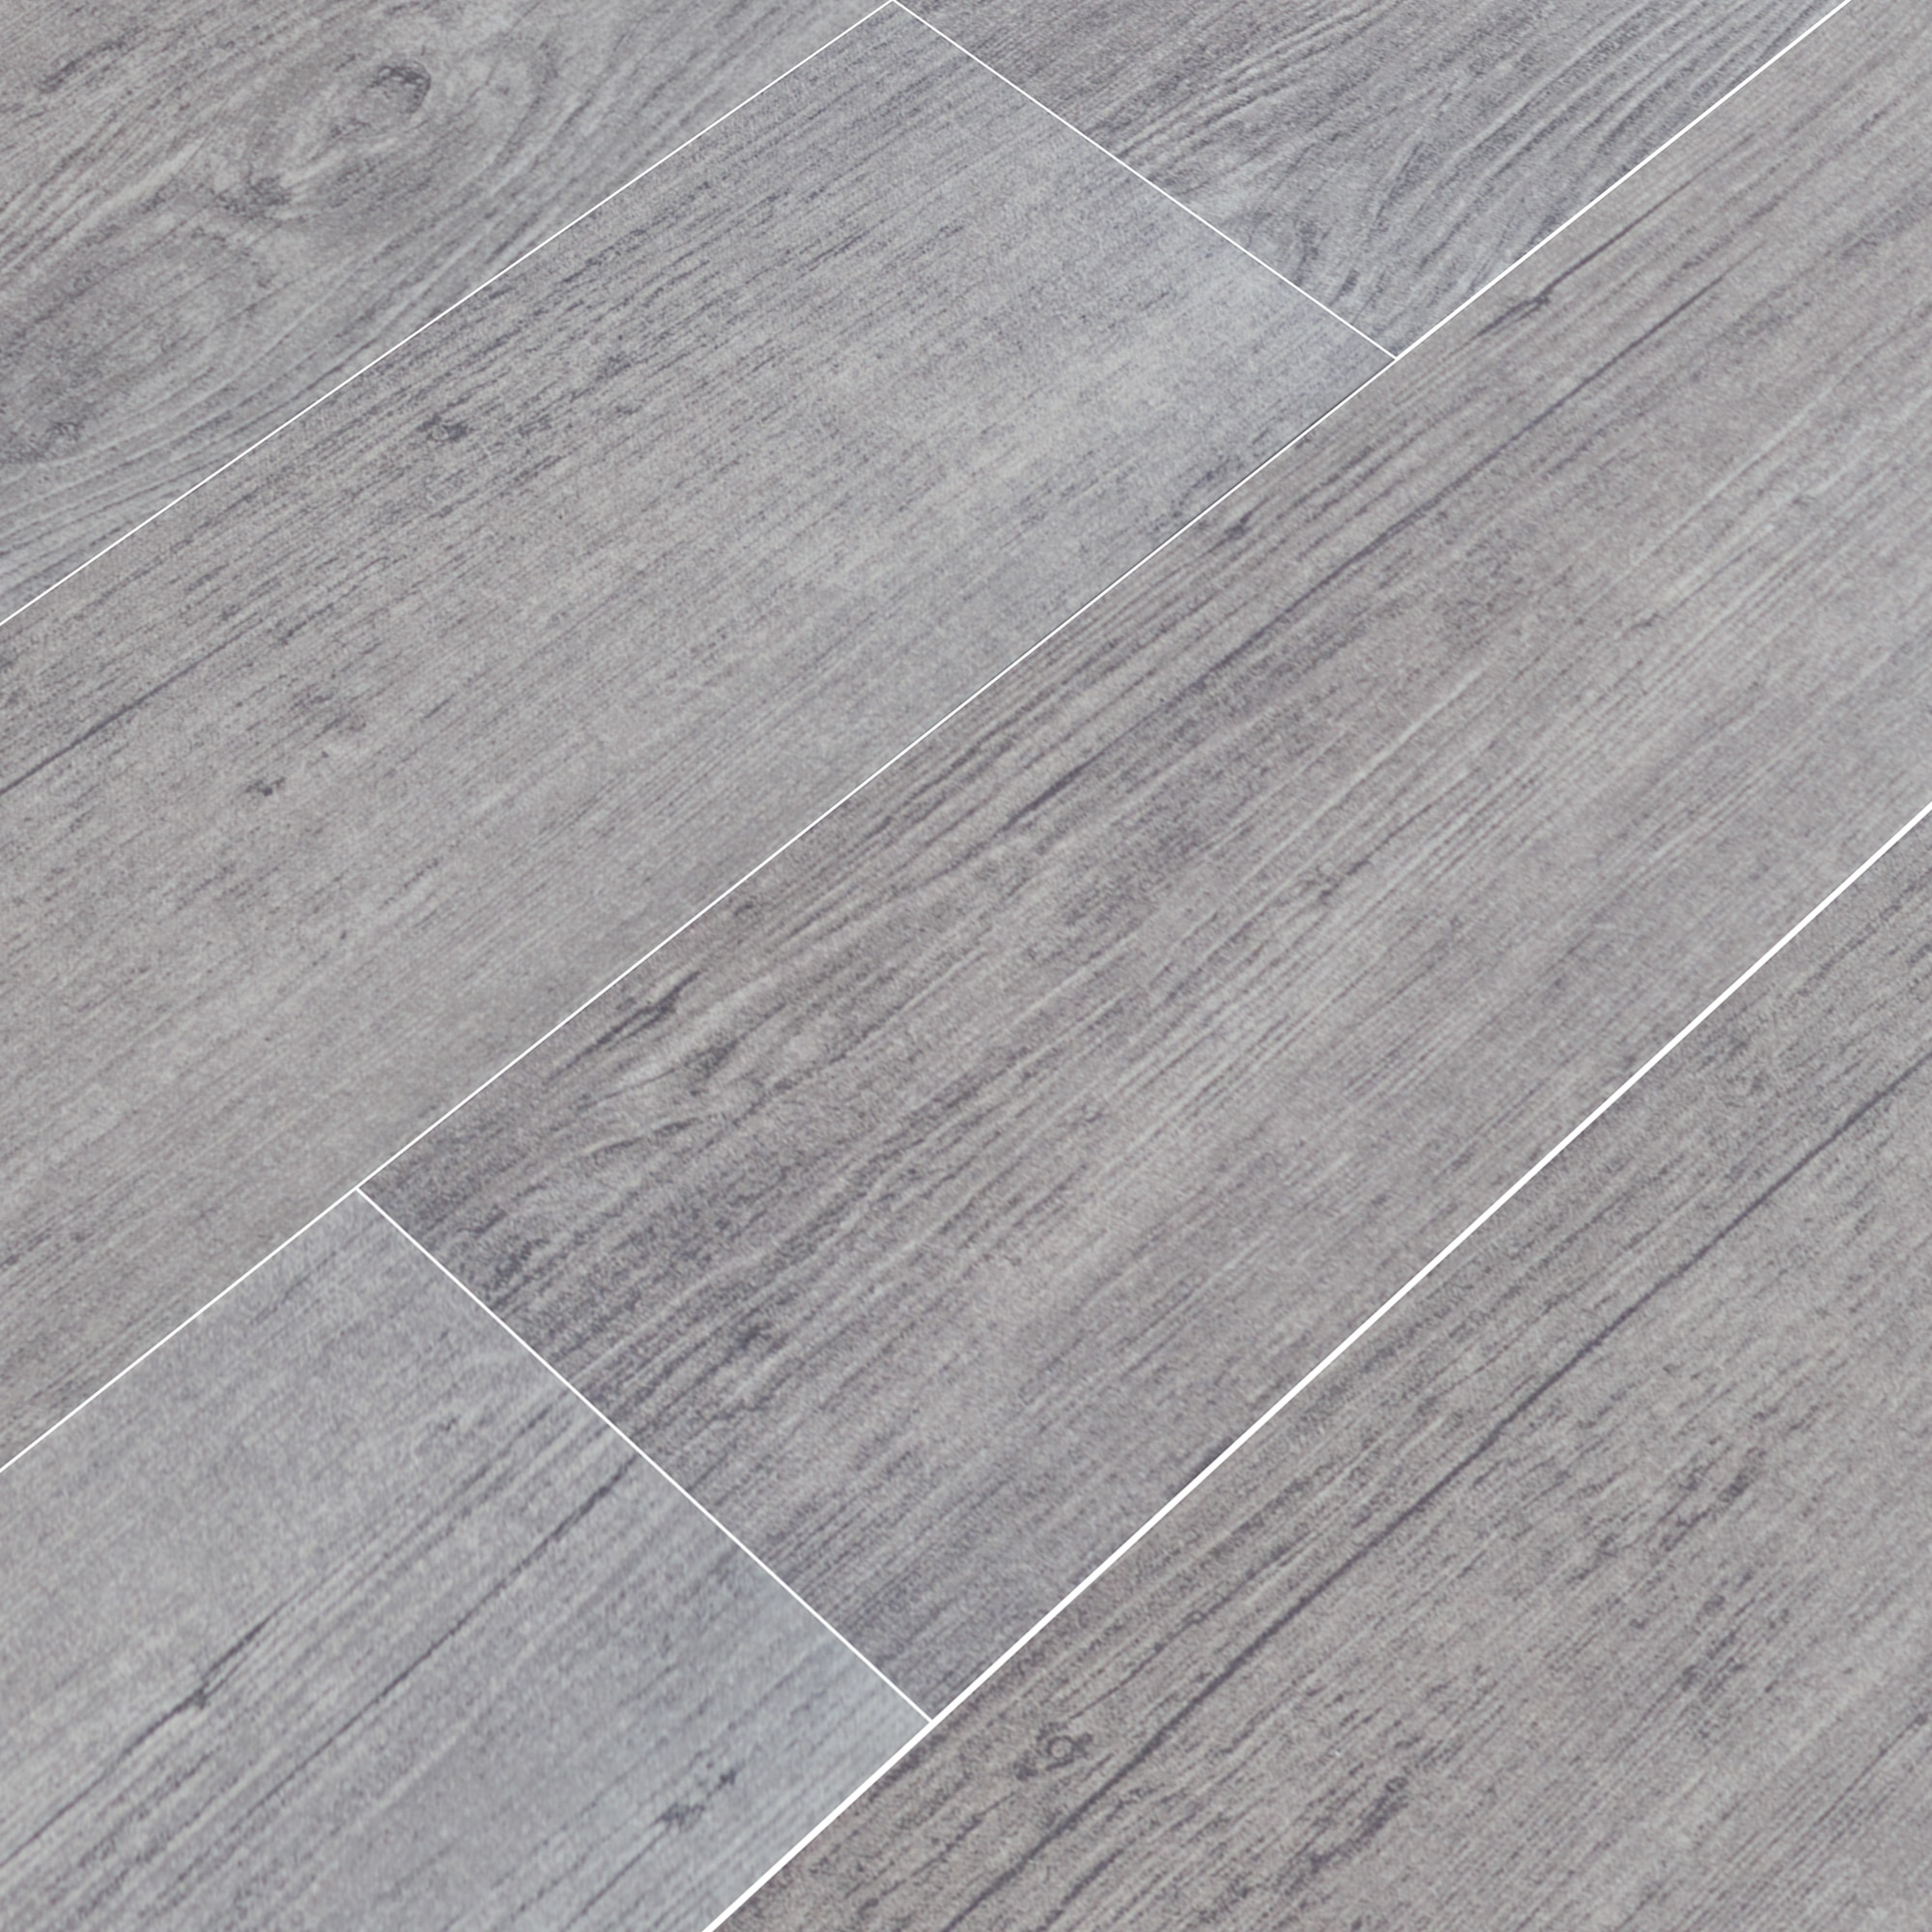 woo blogs image wood palmetto tile that the porcelain picture without category look like axd blog floors